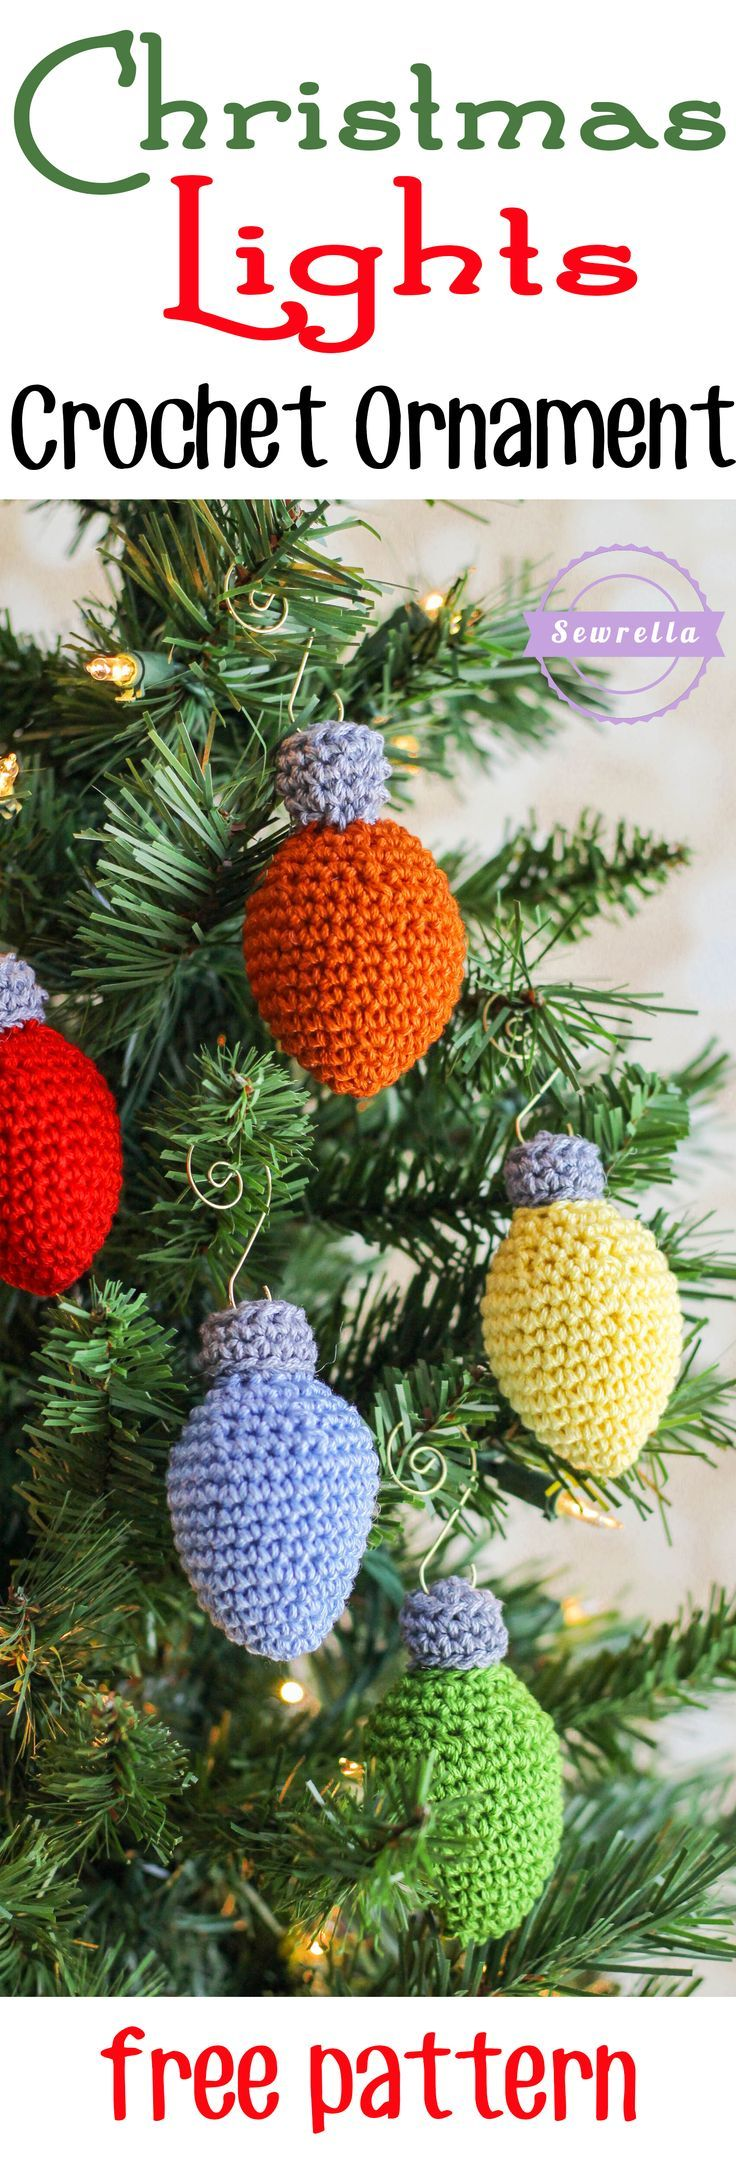 Christmas Lights Crochet Ornament | Decorate your tree with some homemade ornaments!